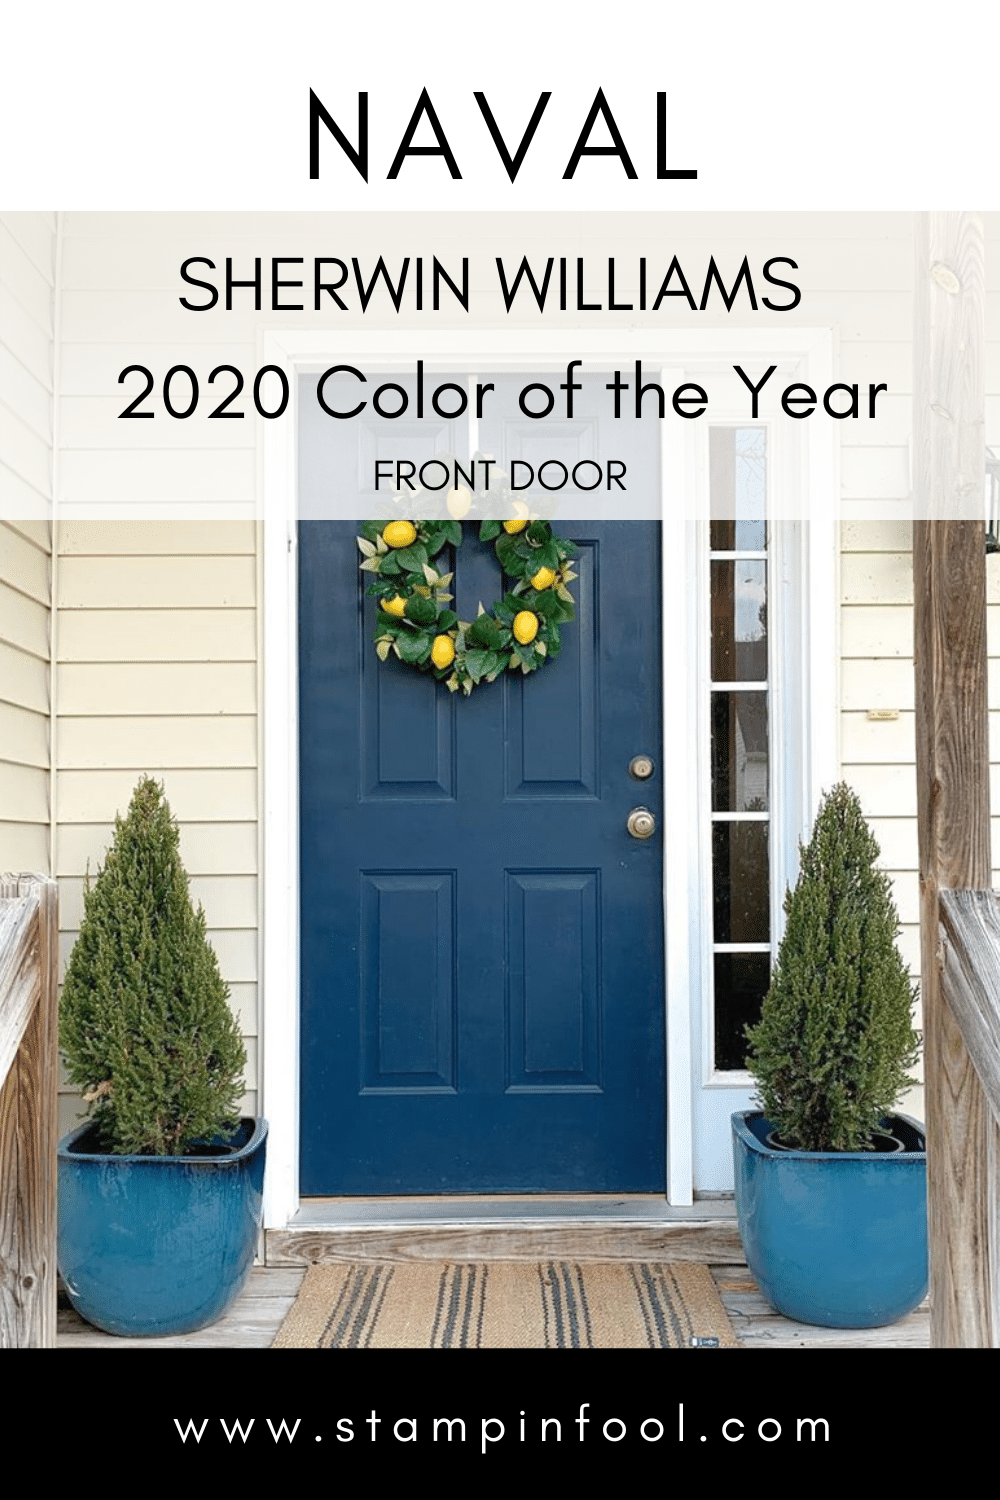 Sherwin Williams Naval Front Door